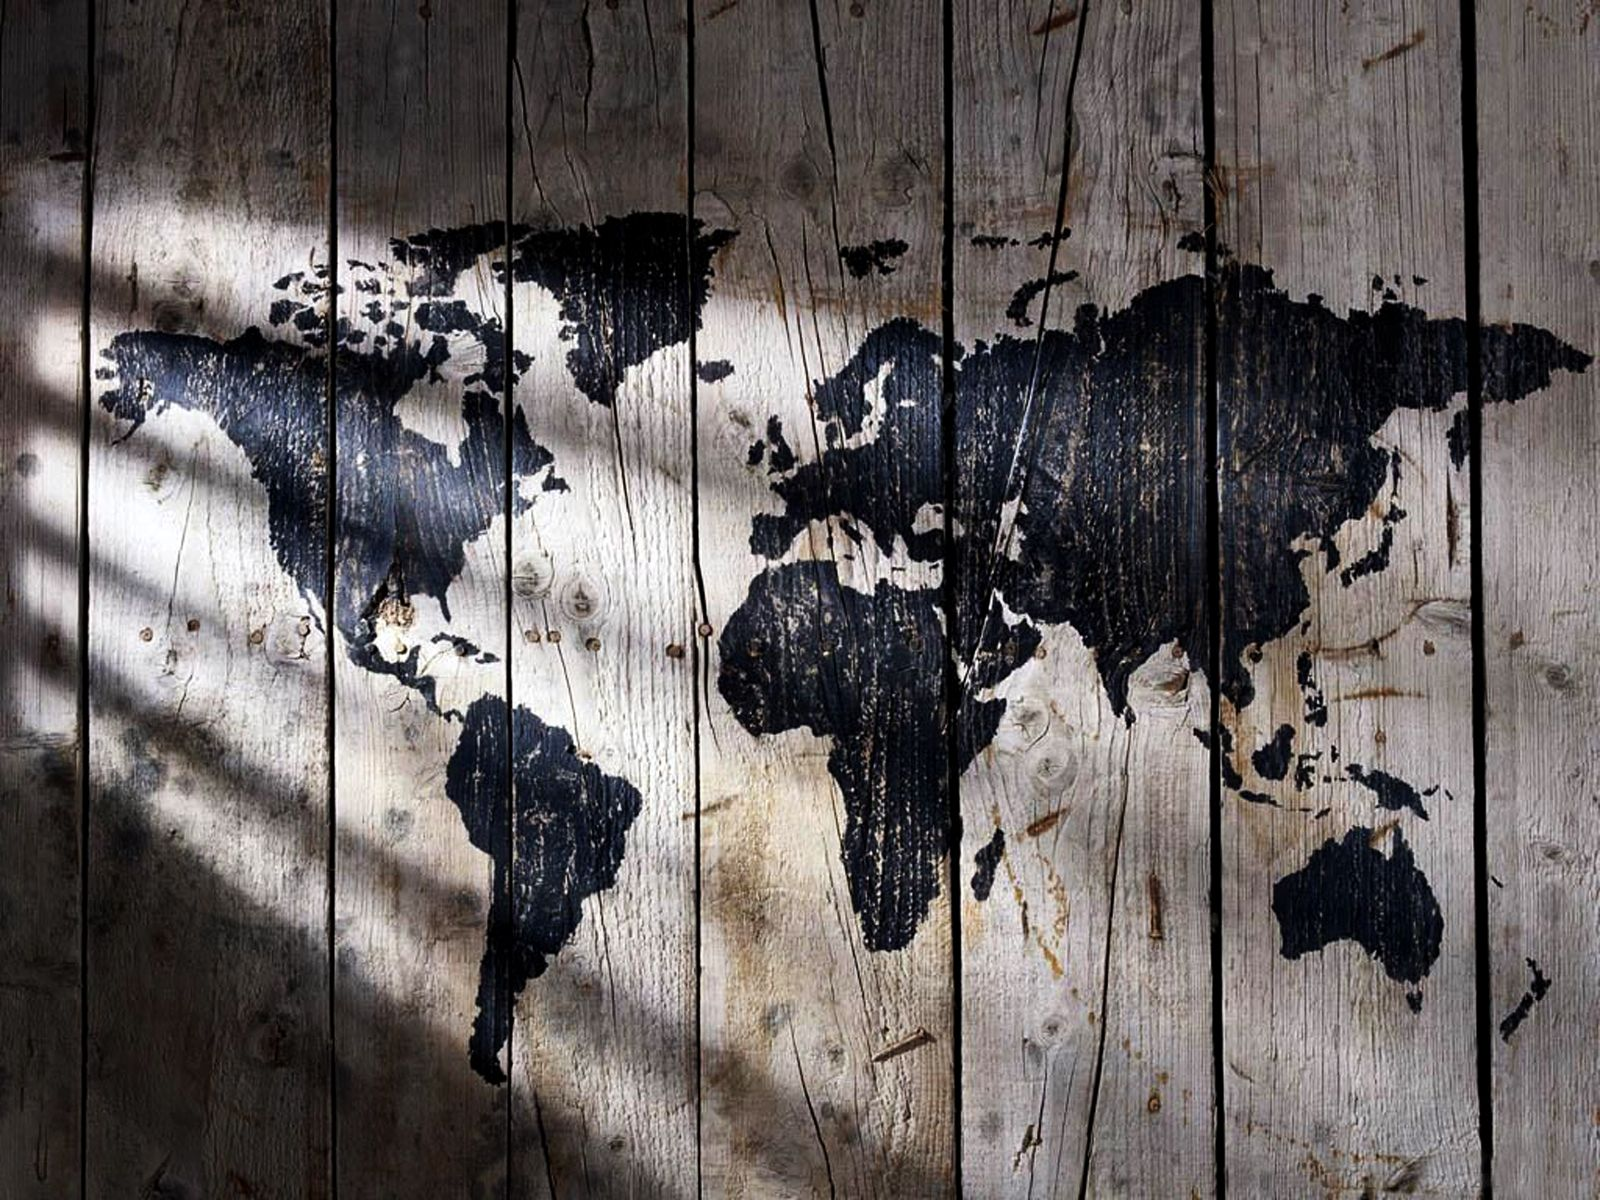 Creative world map wallpaper drm land world map on your walls world map painted on wood texture lights and shadows hd wallpaper gumiabroncs Images